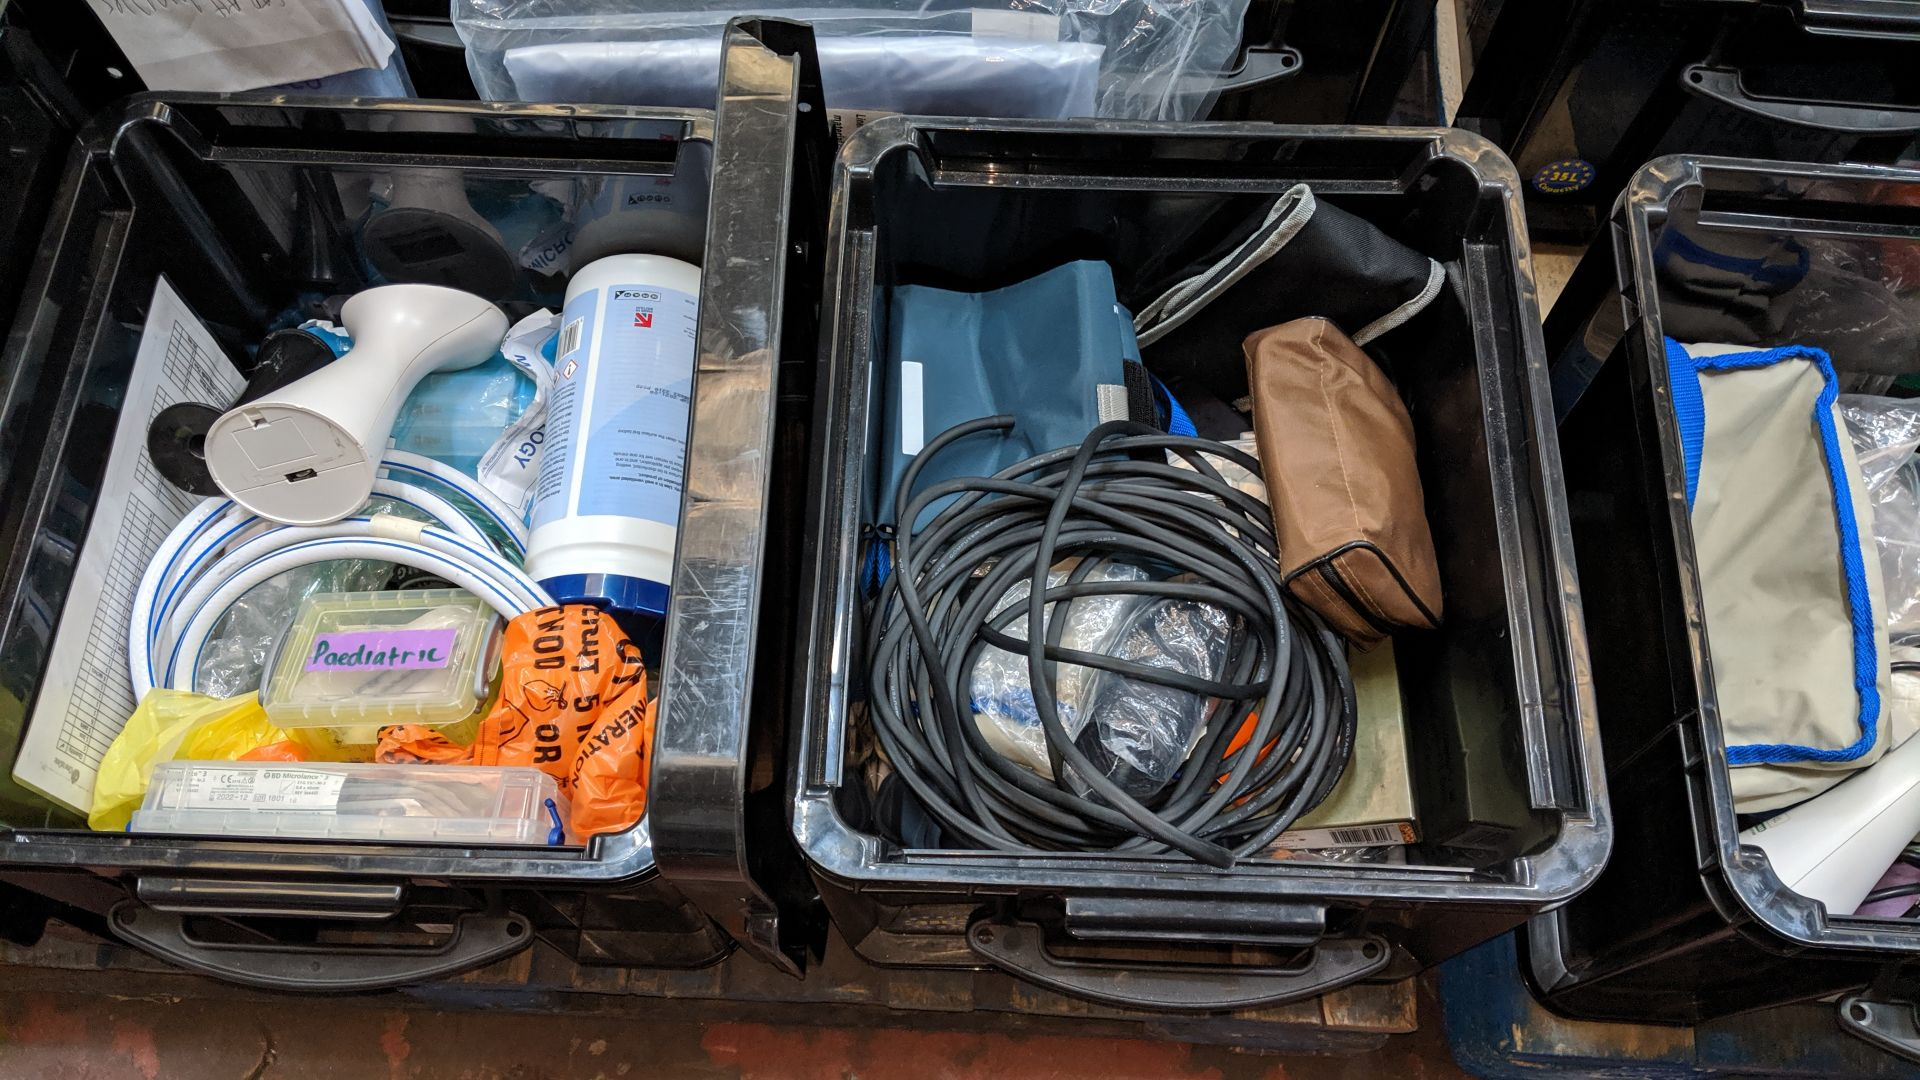 Lot 584 - Contents of 6 crates of assorted medical supplies including blood pressure monitoring equipment,